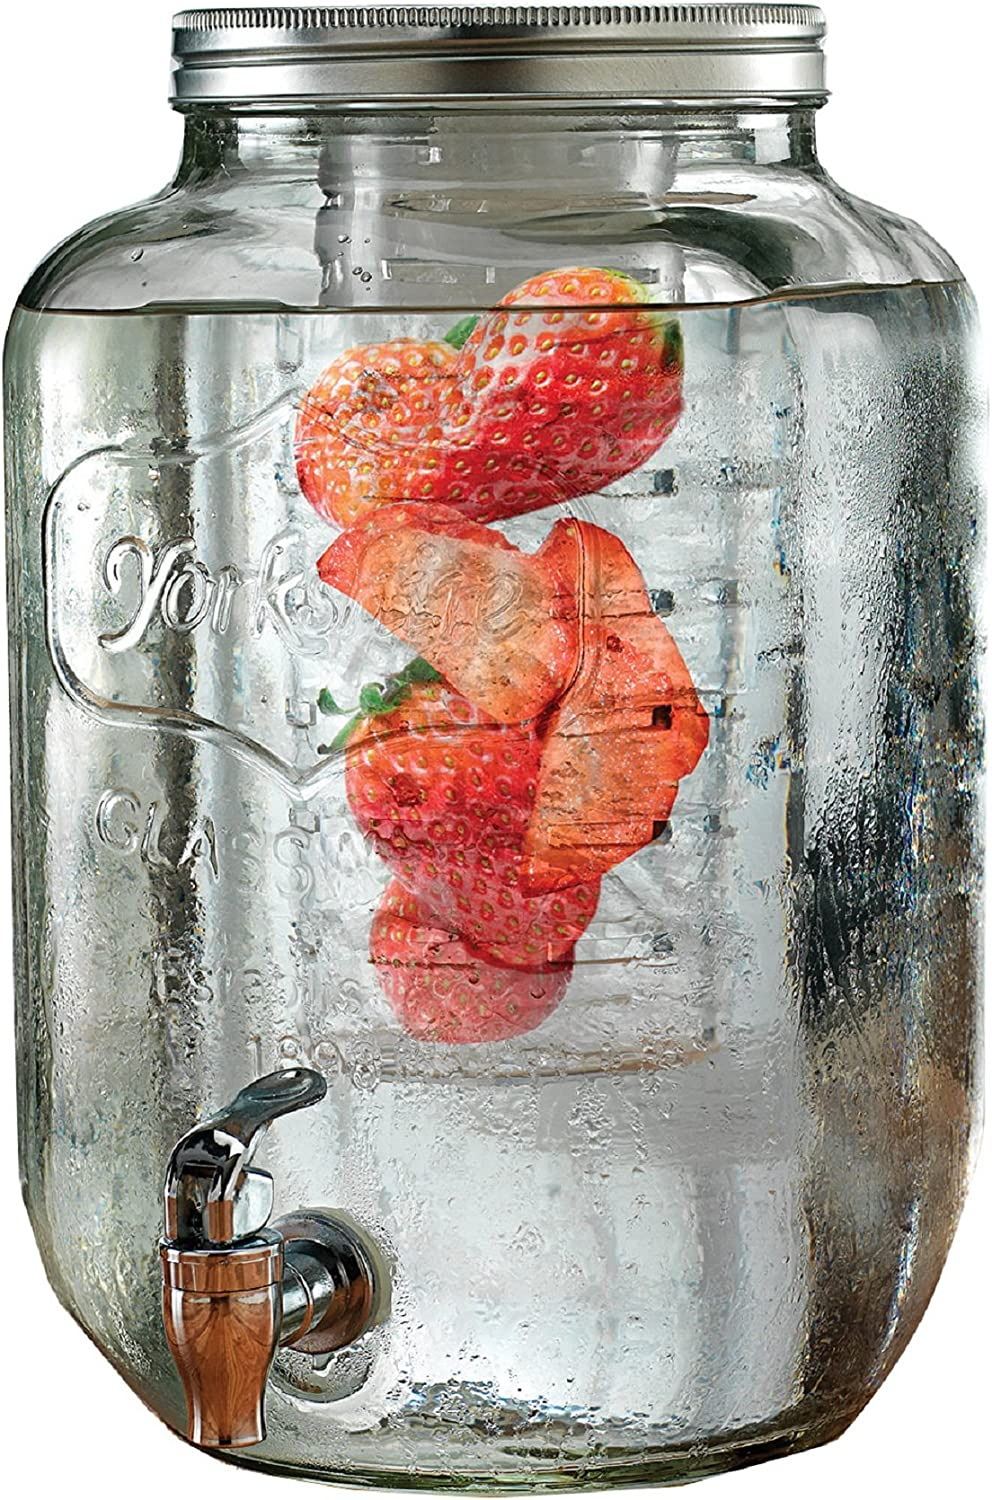 Circleware Sun Tea Mason Jar Beverage Dispenser with Fruit Infuser, Ice Insert and Metal Lid, Entertainment Glassware Water Pitcher for Juice, Beer & Cold Drinks, Huge 2 Gallon, Yorkshire